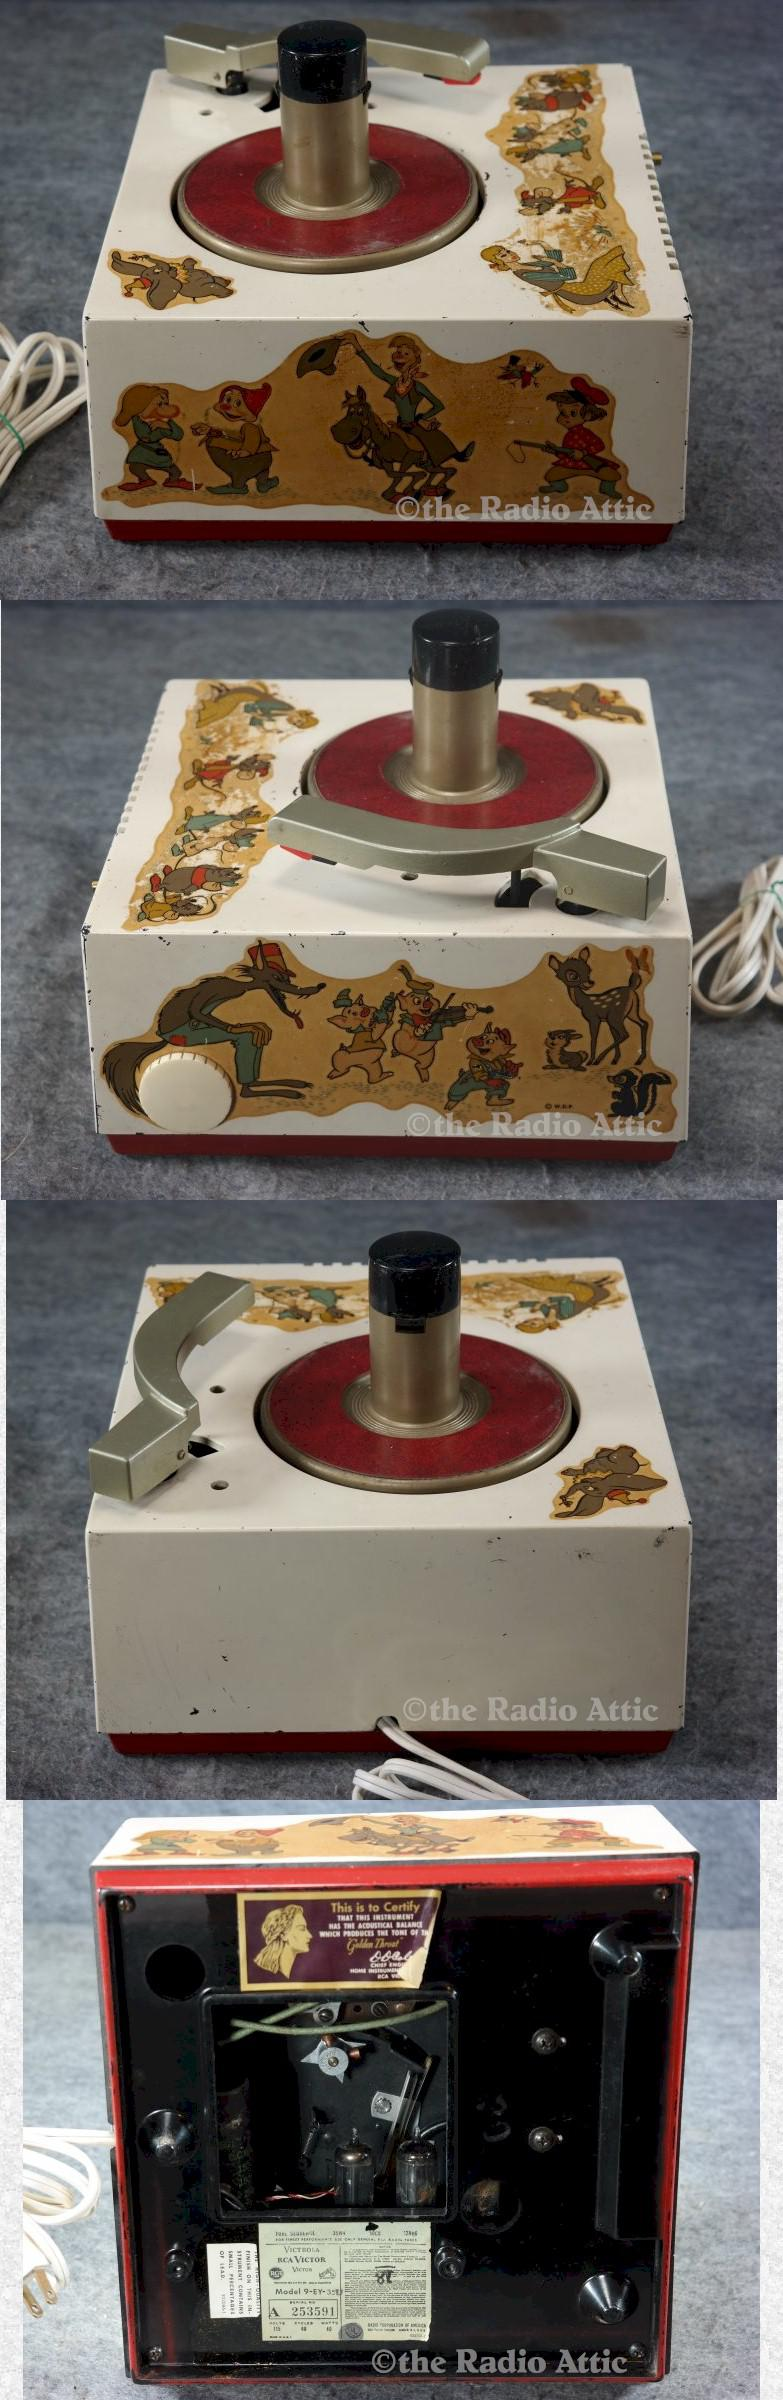 RCA 9-EY-35U 45rpm Player w/Disney Characters (1955)